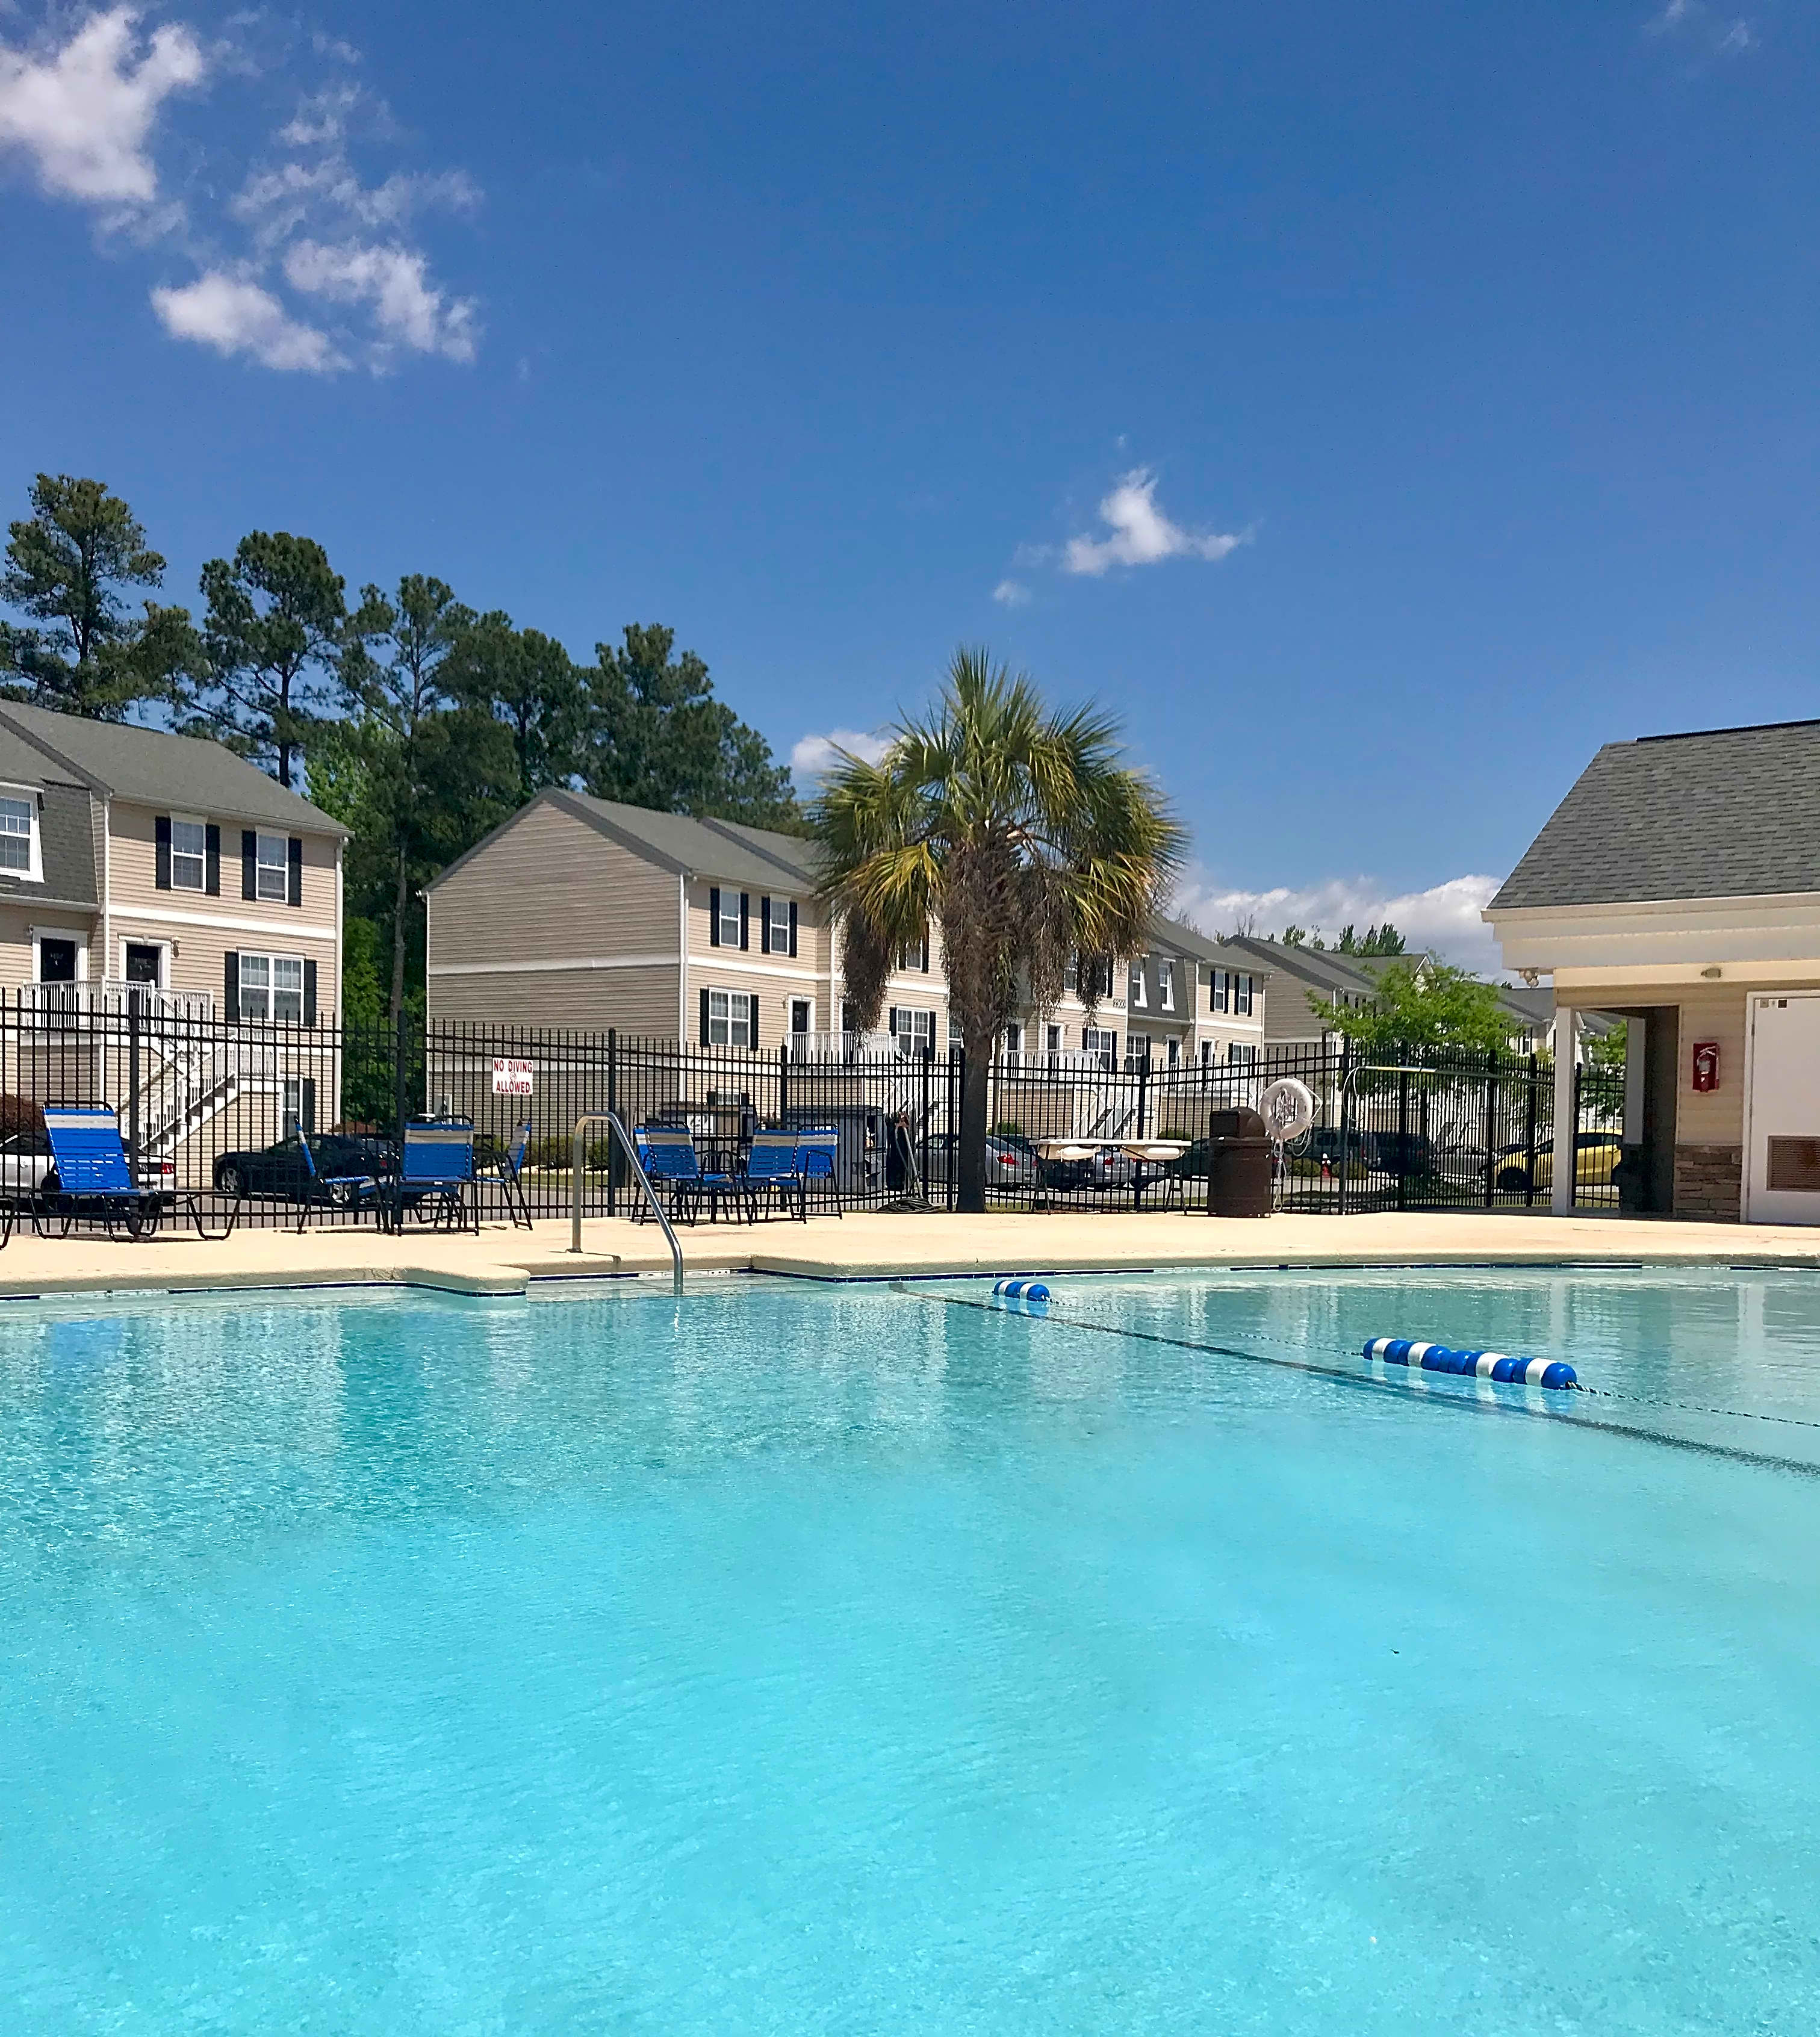 Apartments In Columbia Sc Close To Usc: The Southern At 1051 (Student Housing) Apartments